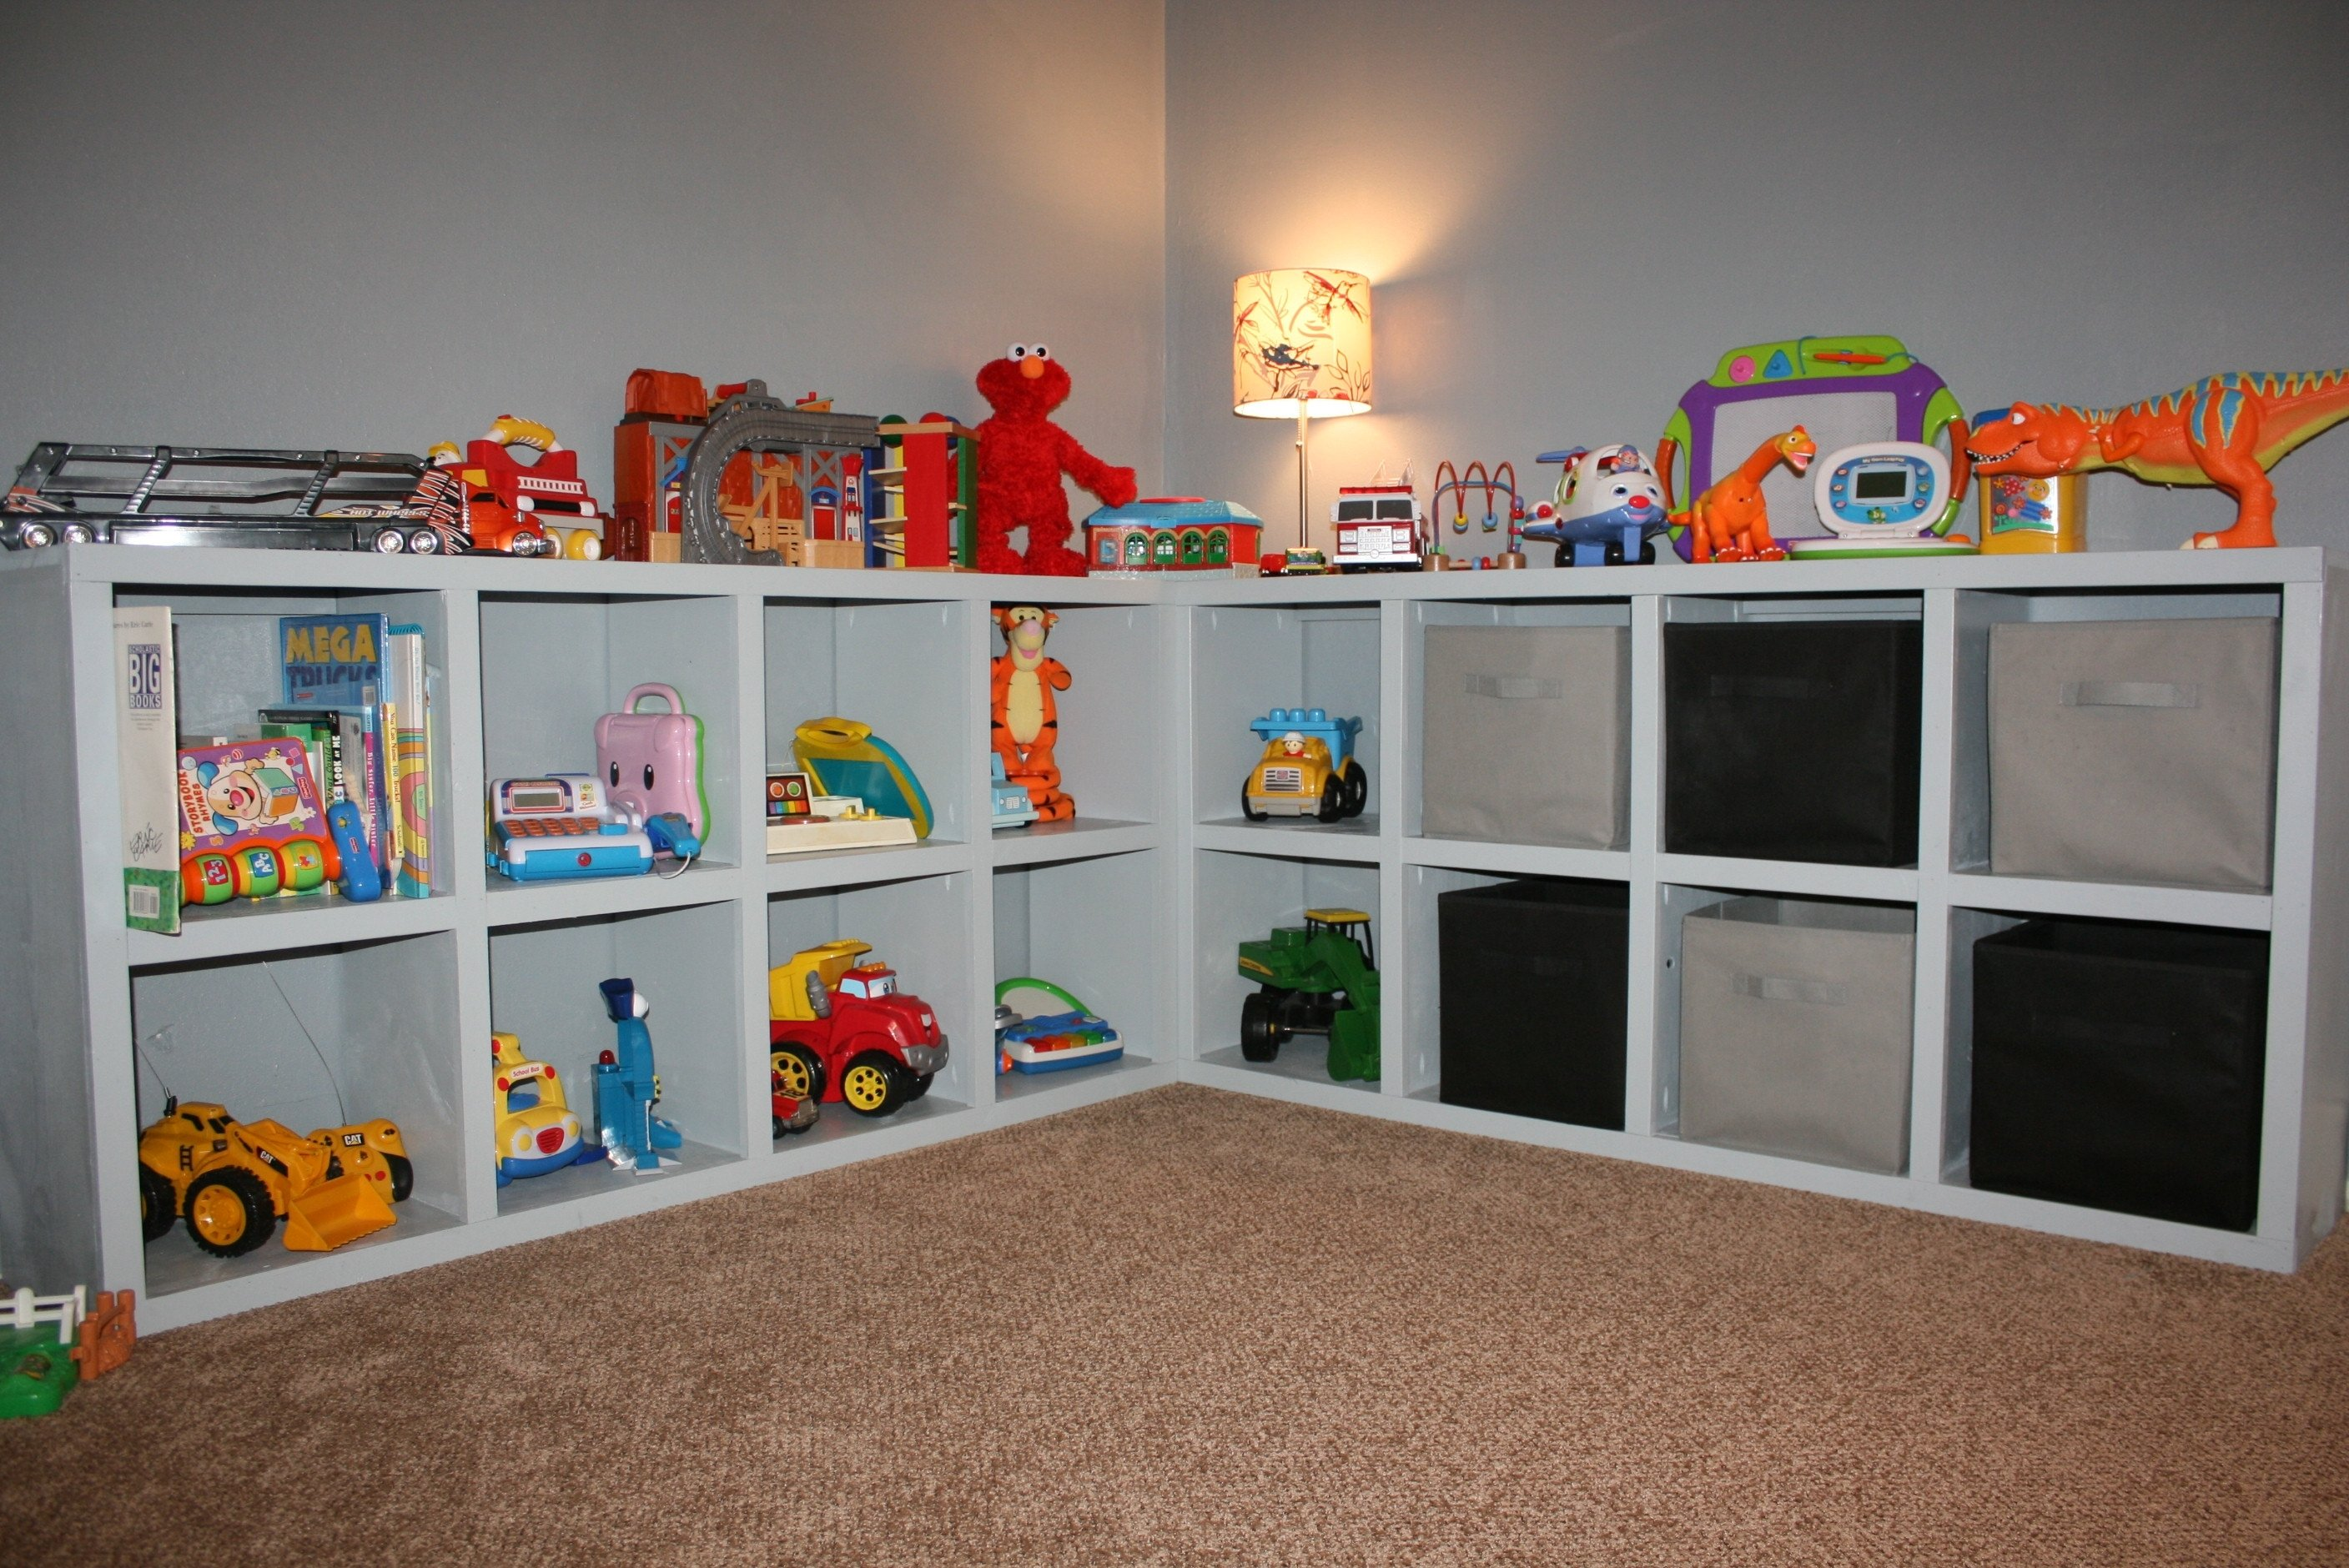 10 Gorgeous Storage Ideas For Kids Room awesome furniture ikea designs with colorful kids room design and 2020